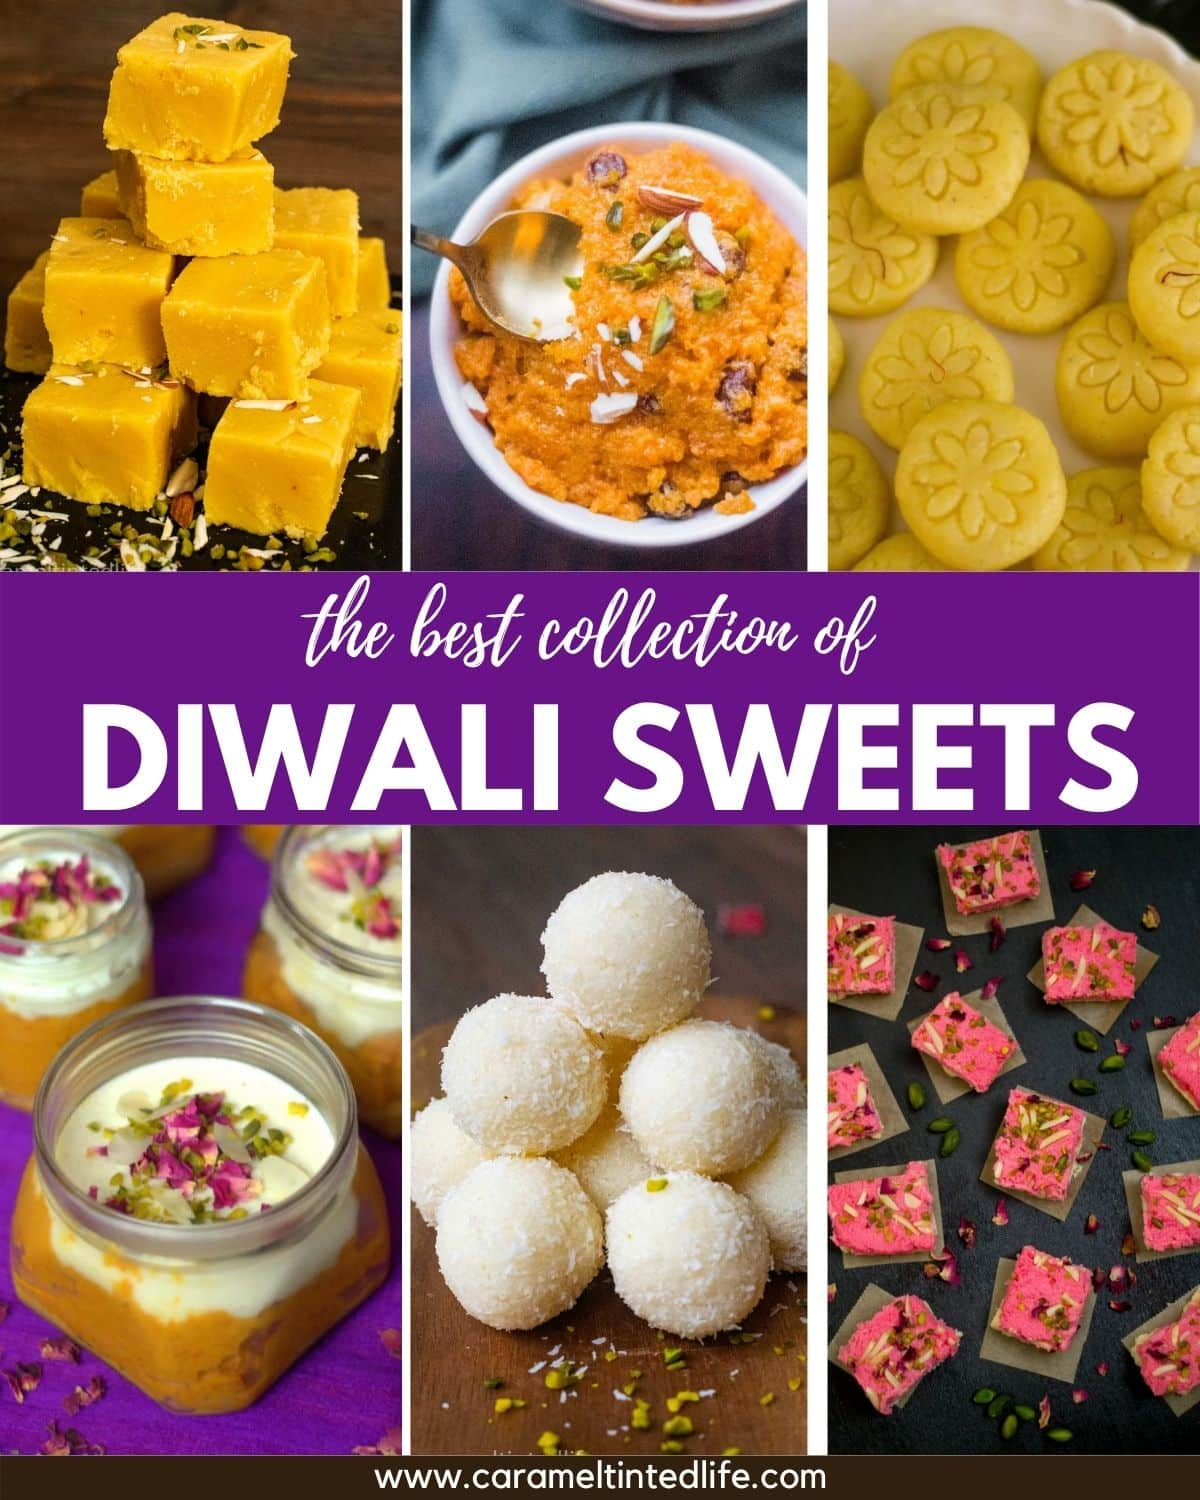 A collage showing a collection of Diwali Sweets recipes